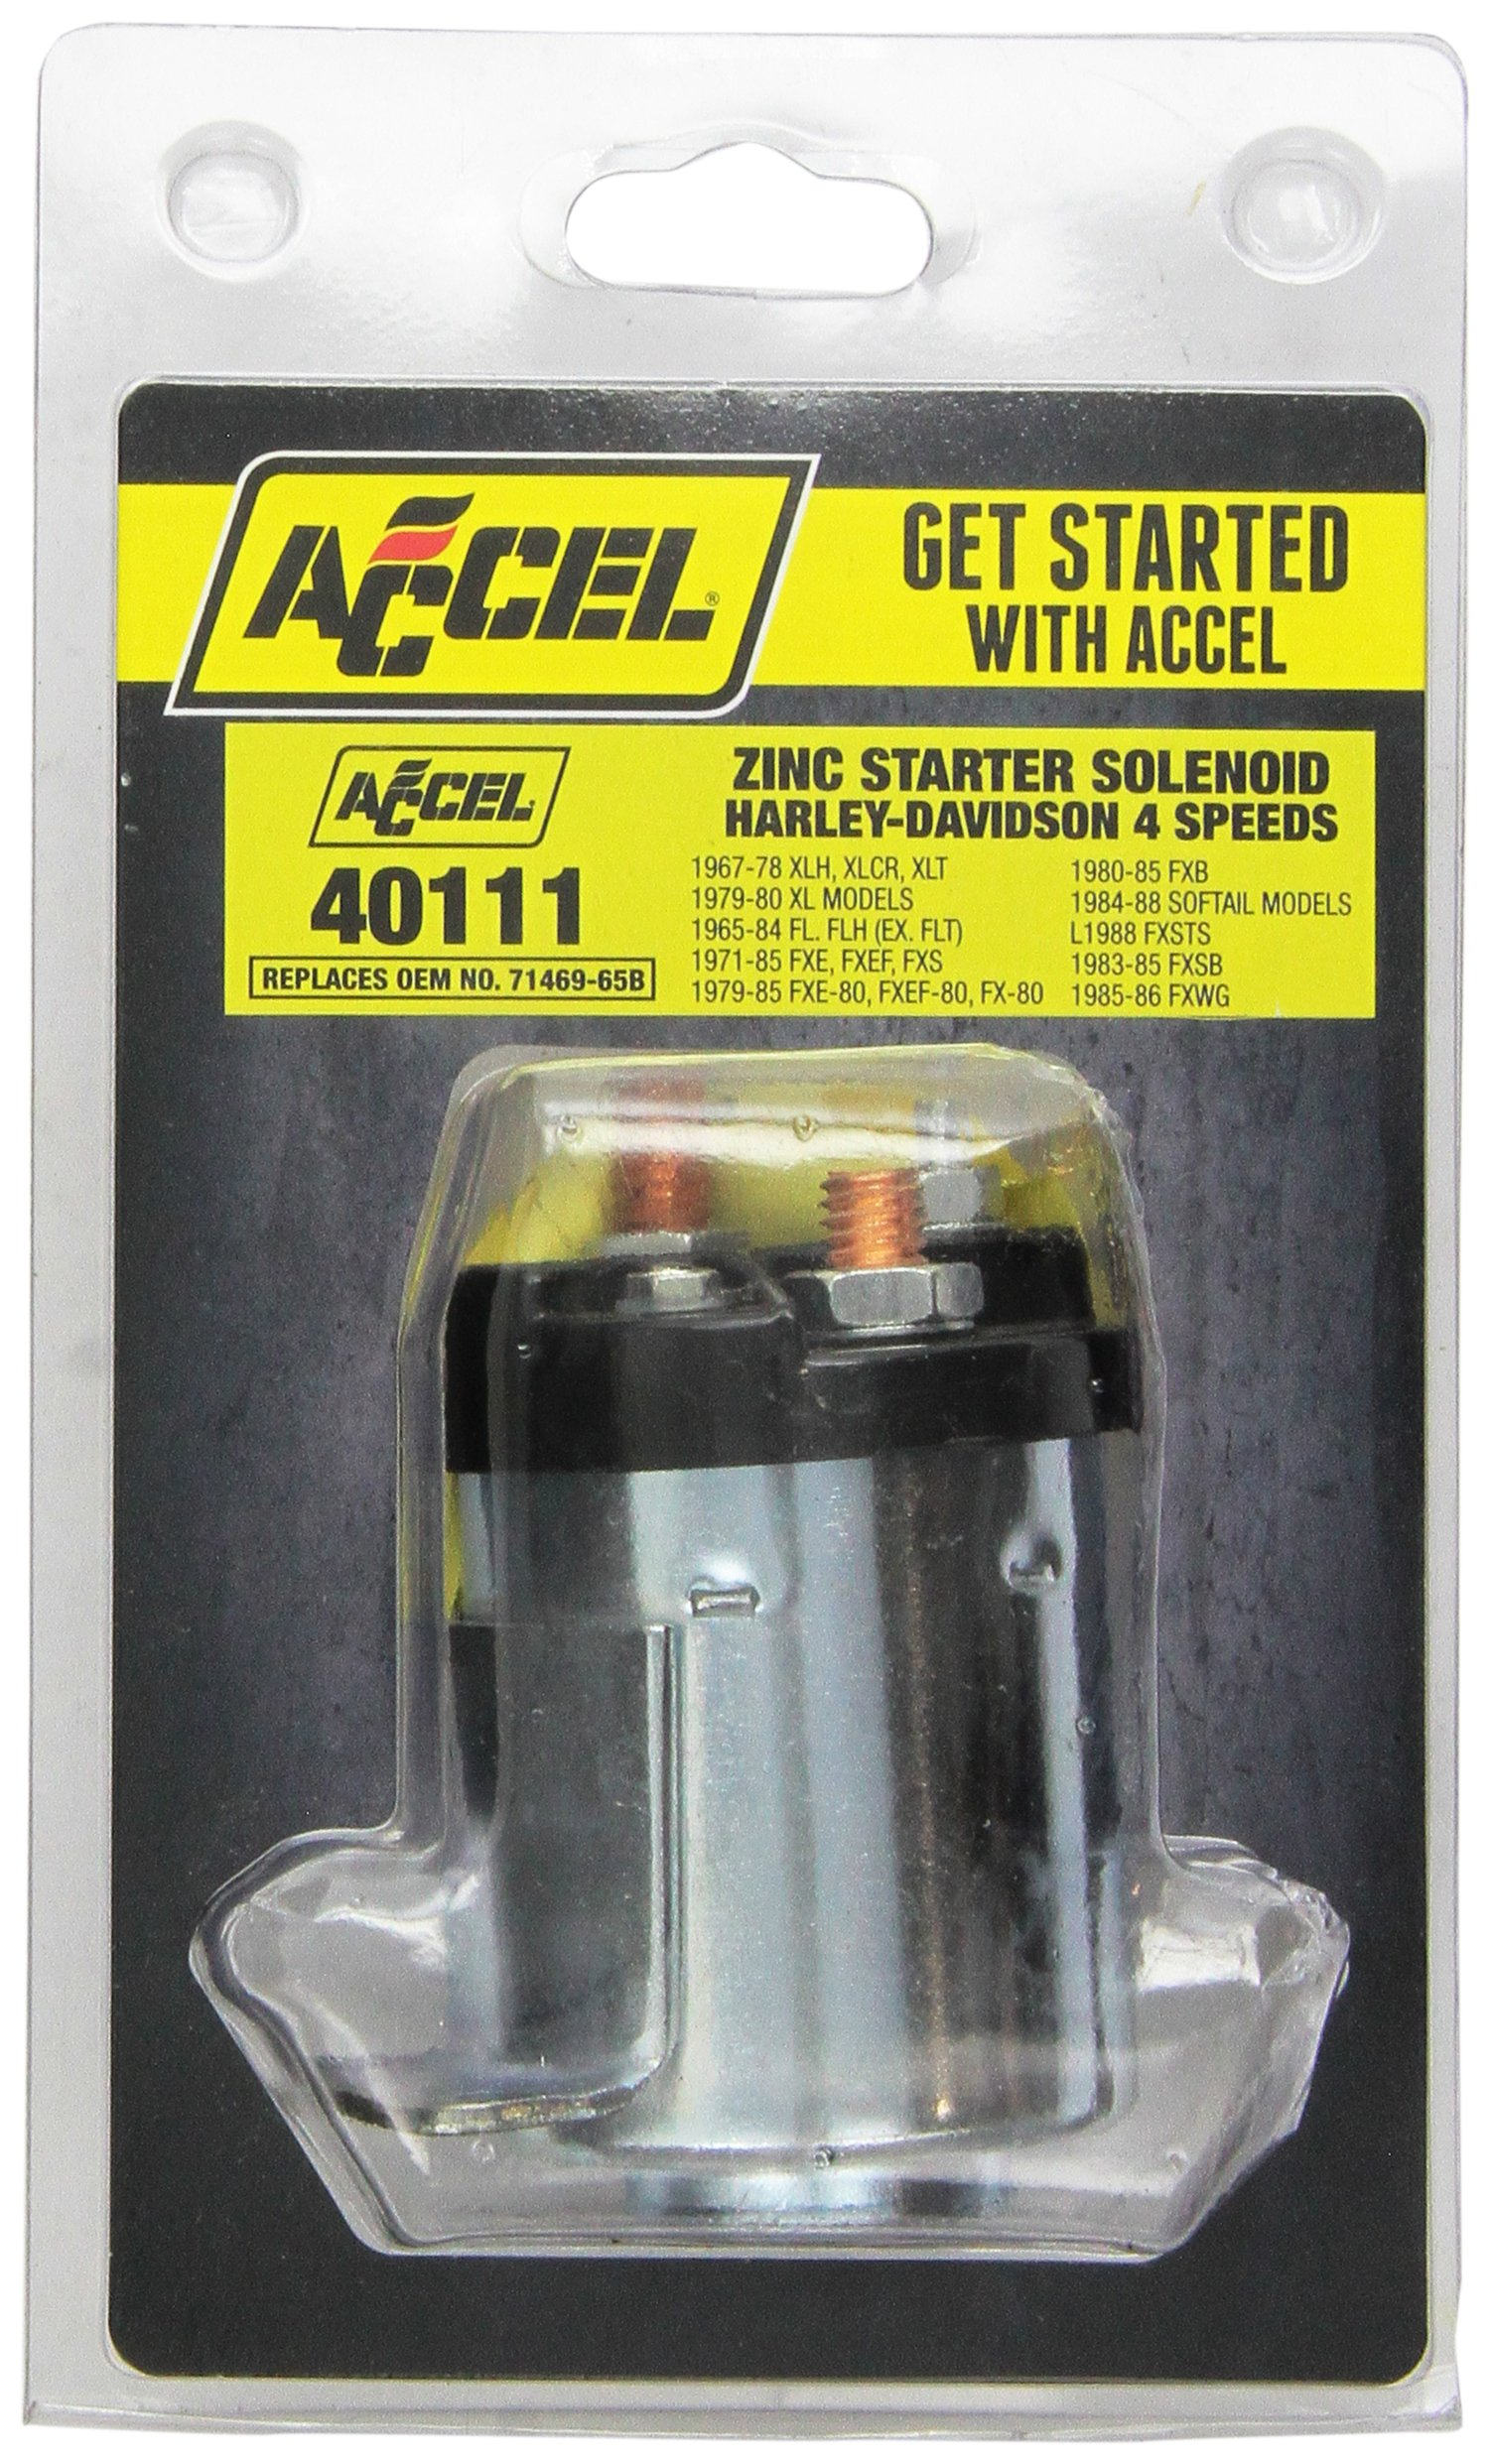 ACCEL Starter Solenoid (ACC 40111) by ACCEL (Image #2)